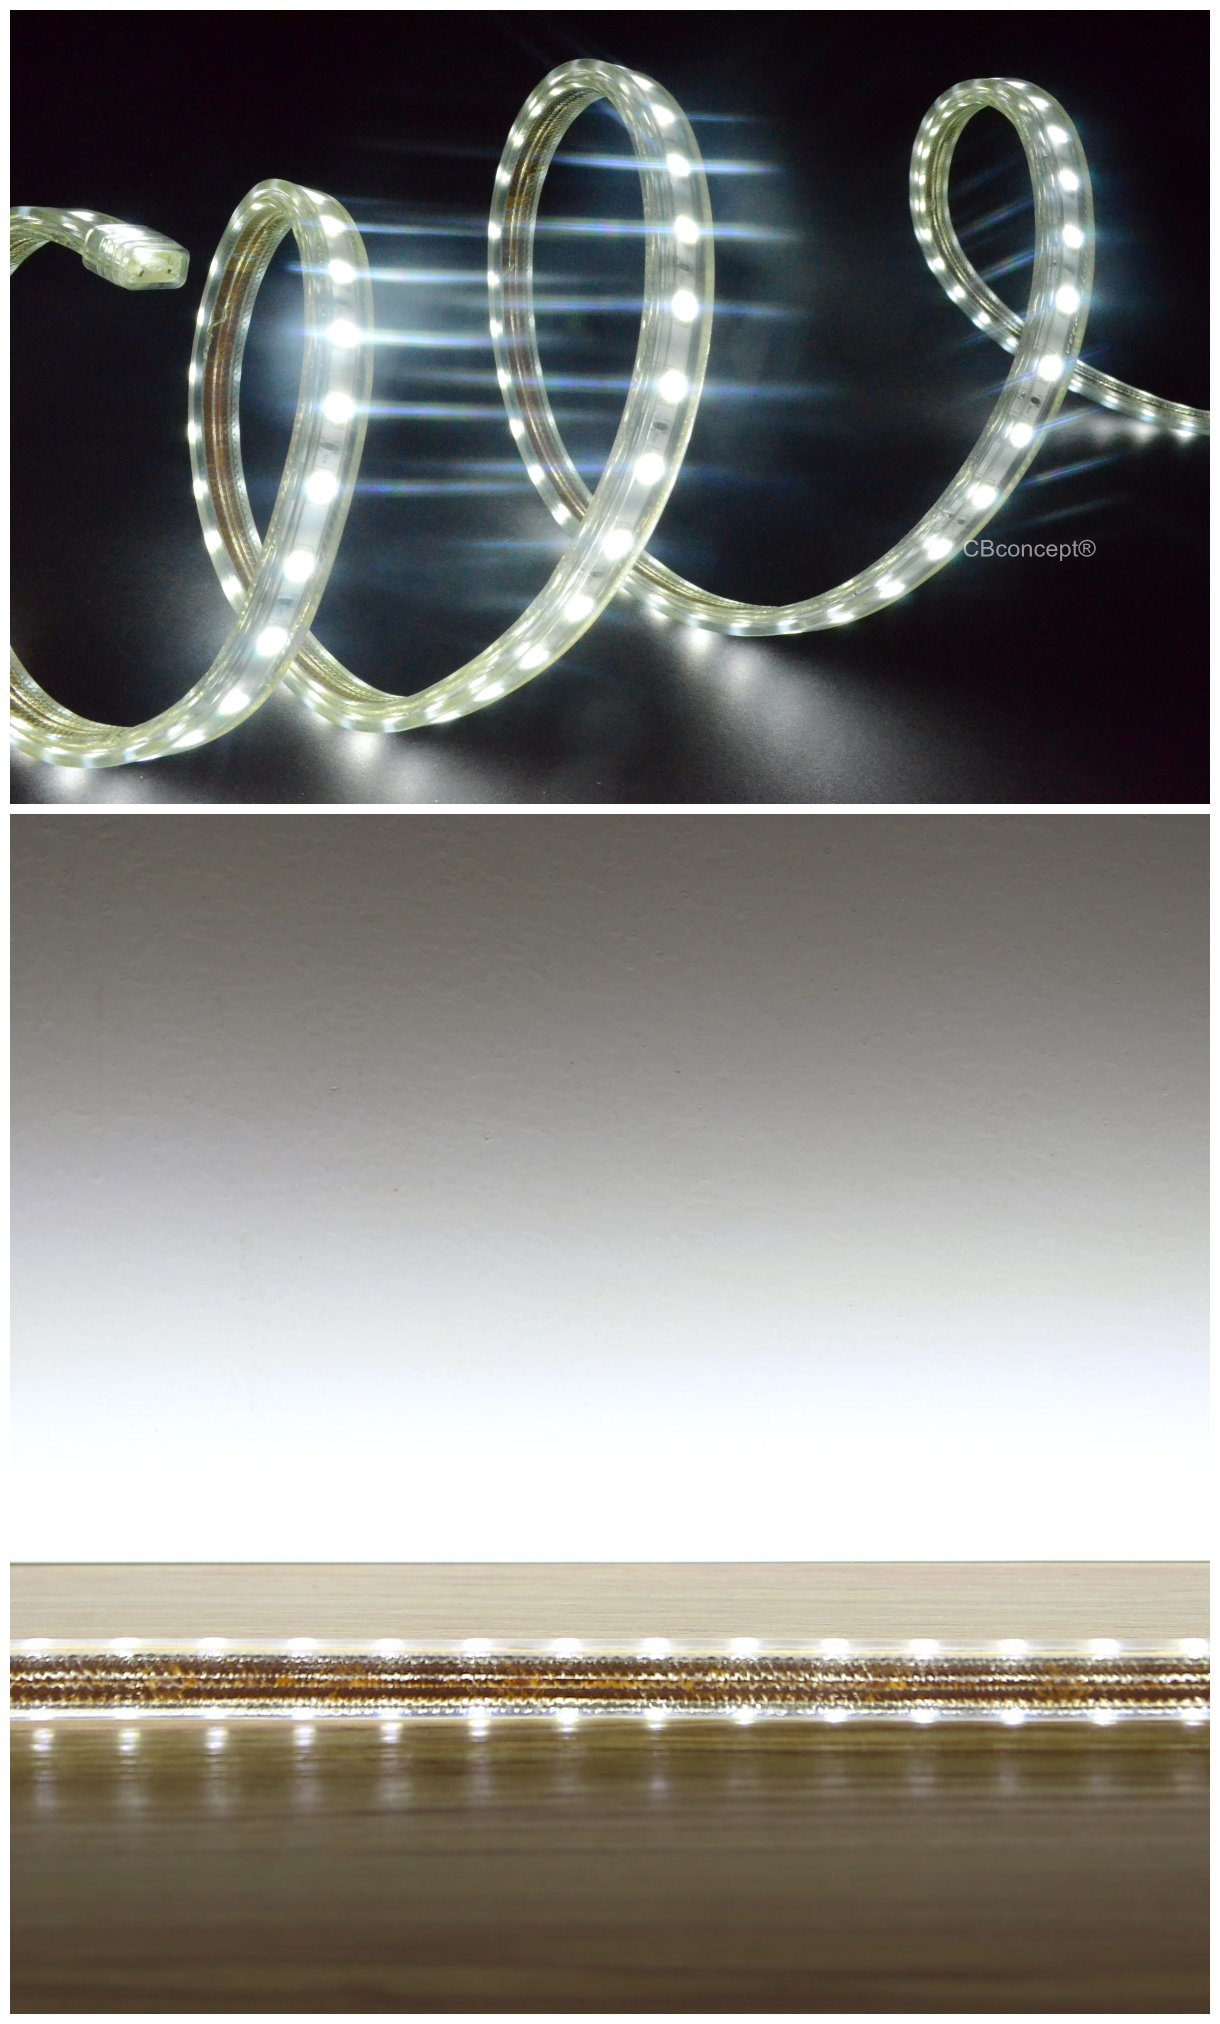 CBConcept UL Listed, 100 Feet,Super Bright 27000 Lumen, 6000K Pure White, Dimmable, 110-120V AC Flexible Flat LED Strip Rope Light, 1830 Units 5050 SMD LEDs, Indoor/Outdoor Use, [Ready to use] by CBconcept (Image #3)